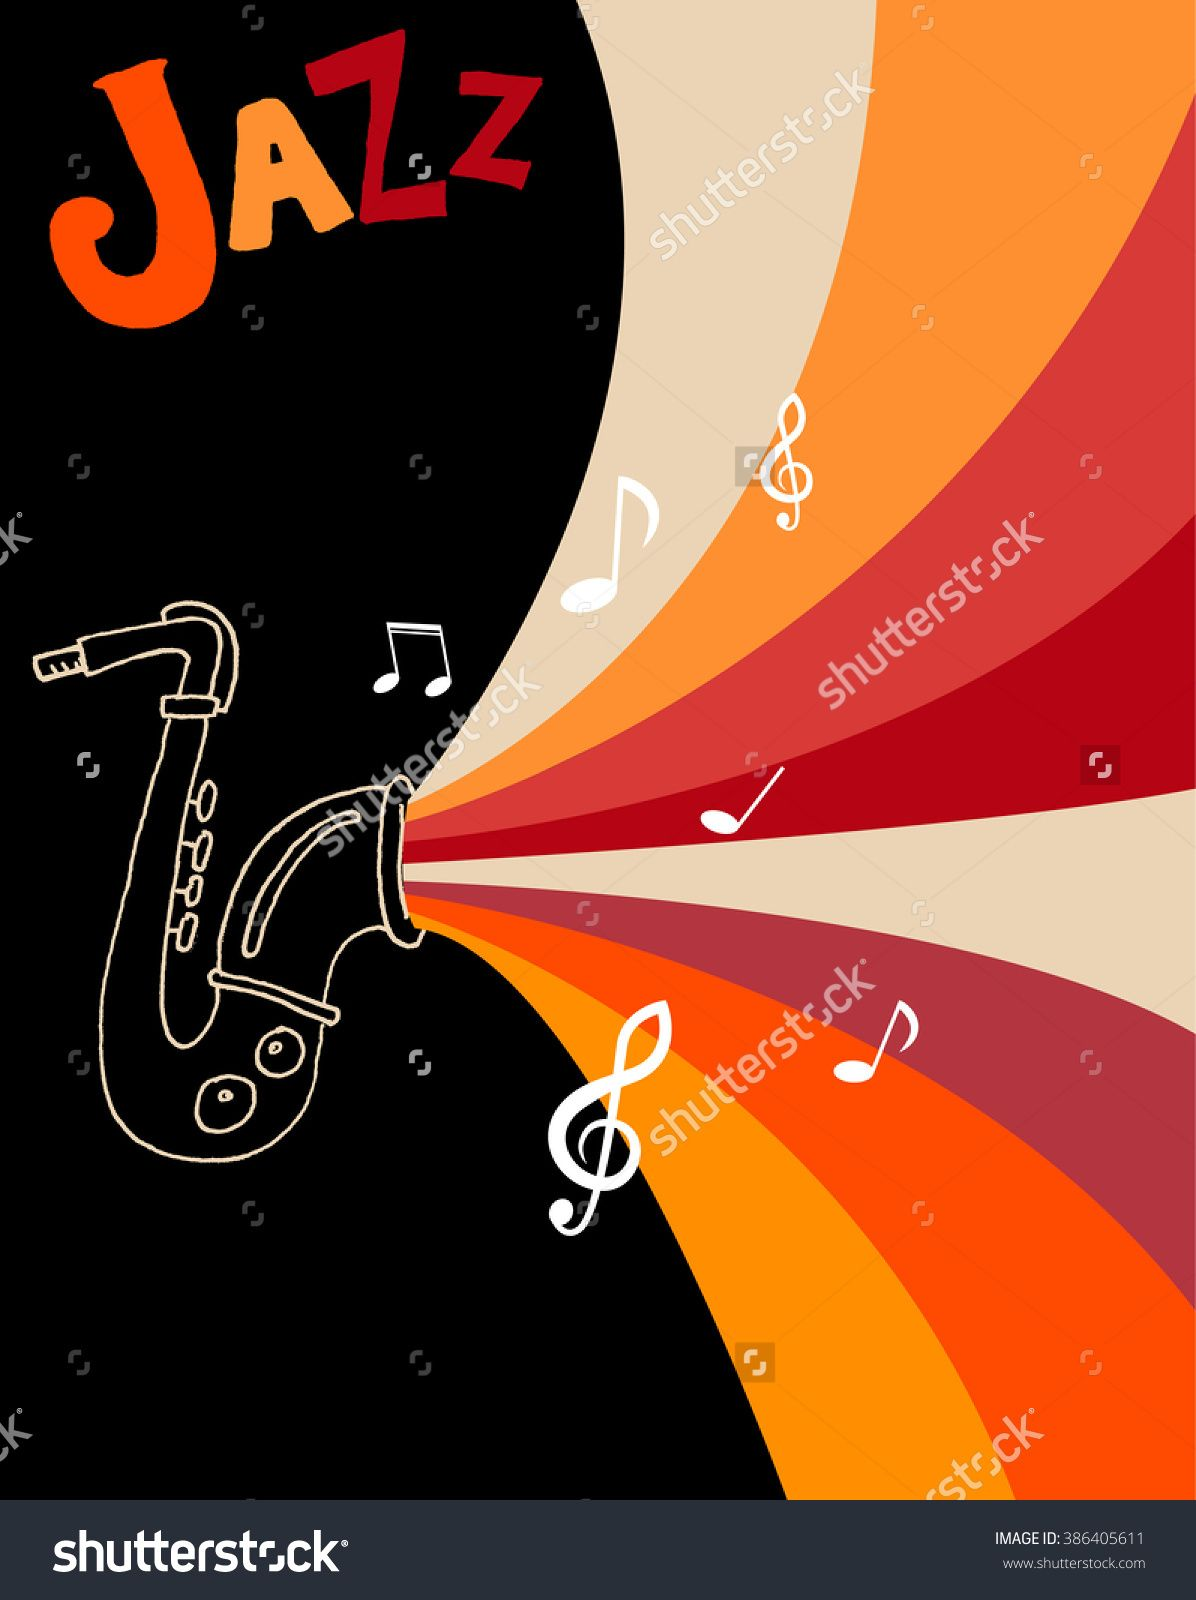 stock-vector-jazz-festival-poster-template-jazz-music ...